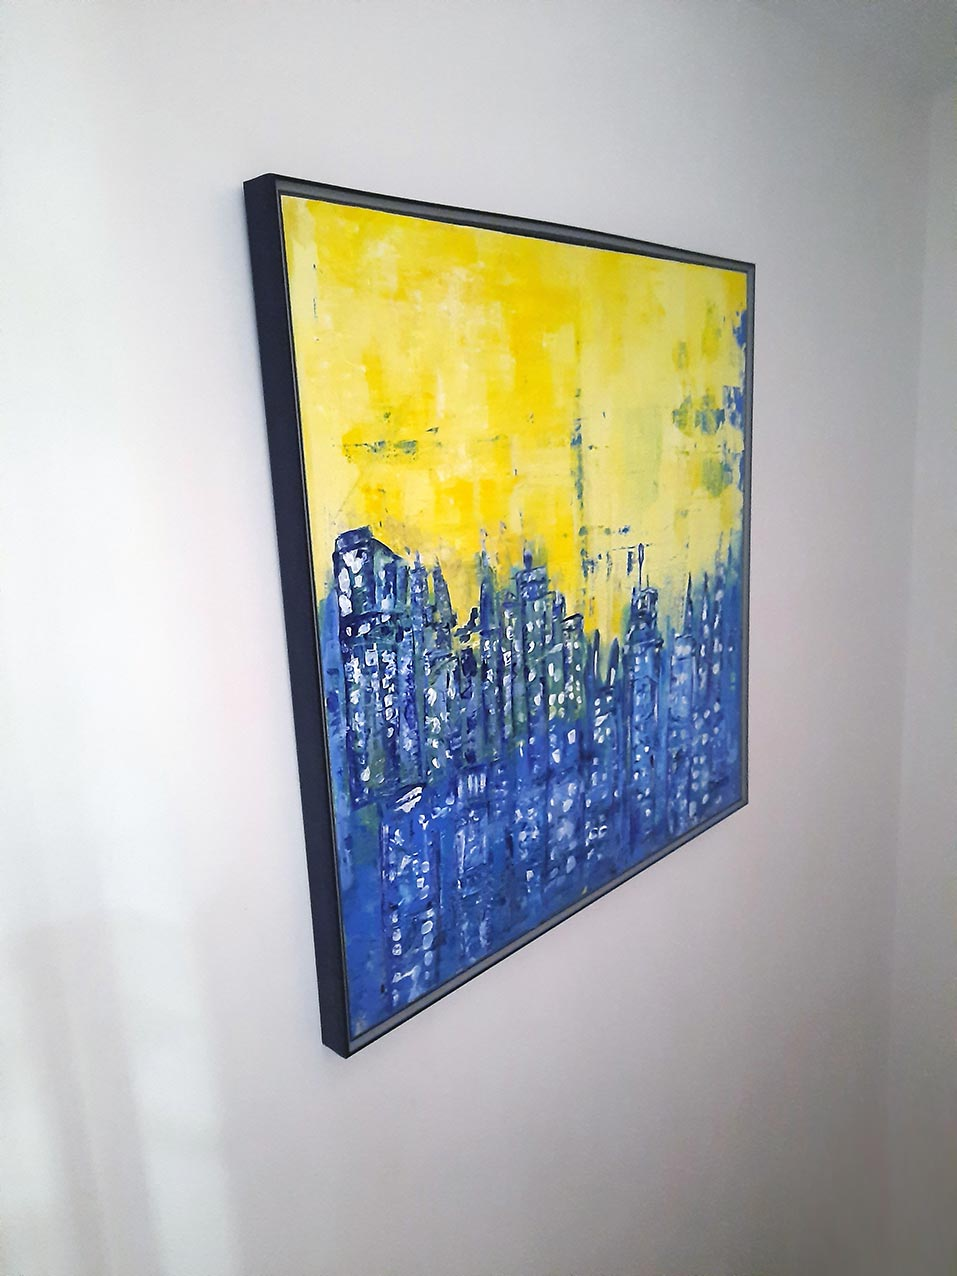 The-lost-City-Patrick-Joosten-2019-Jan-27-side-view-with-frame